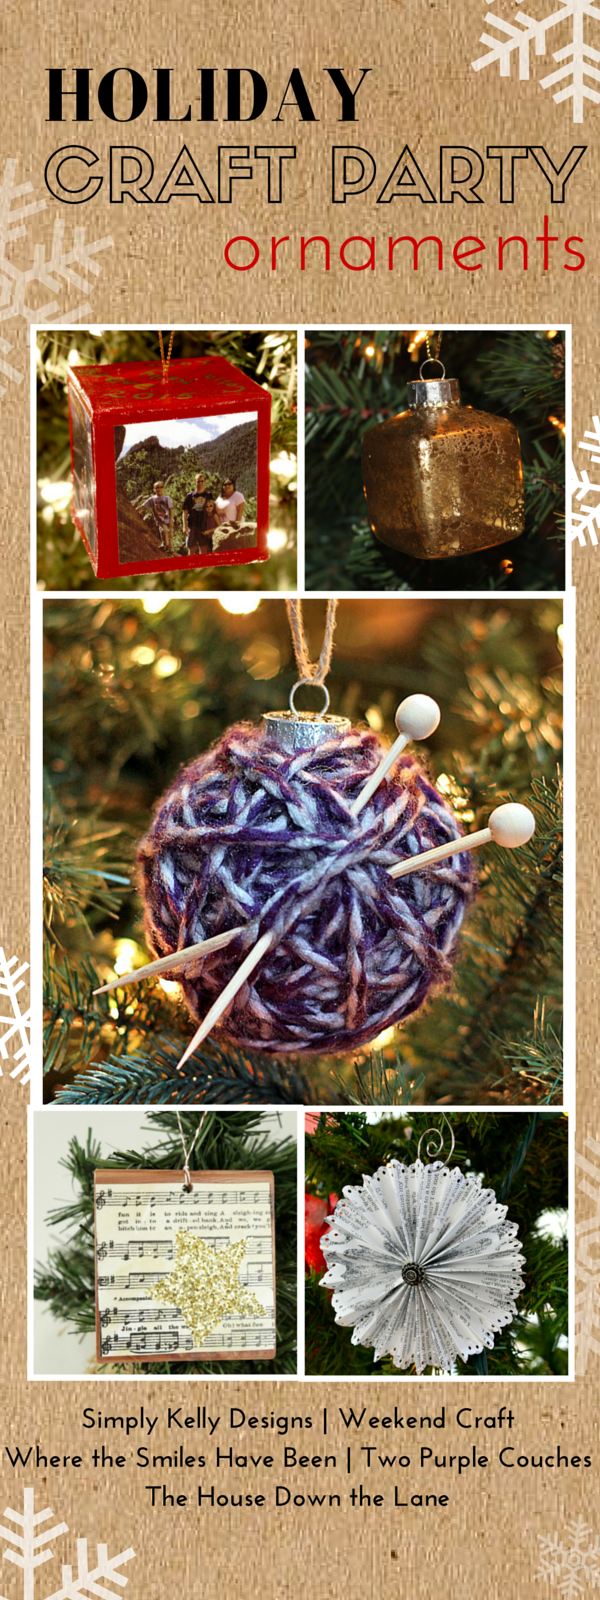 Beautiful handmade ornament ideas! Join us for our Holiday Craft Part - a week full of holiday crafts, creative ideas and inspiration!